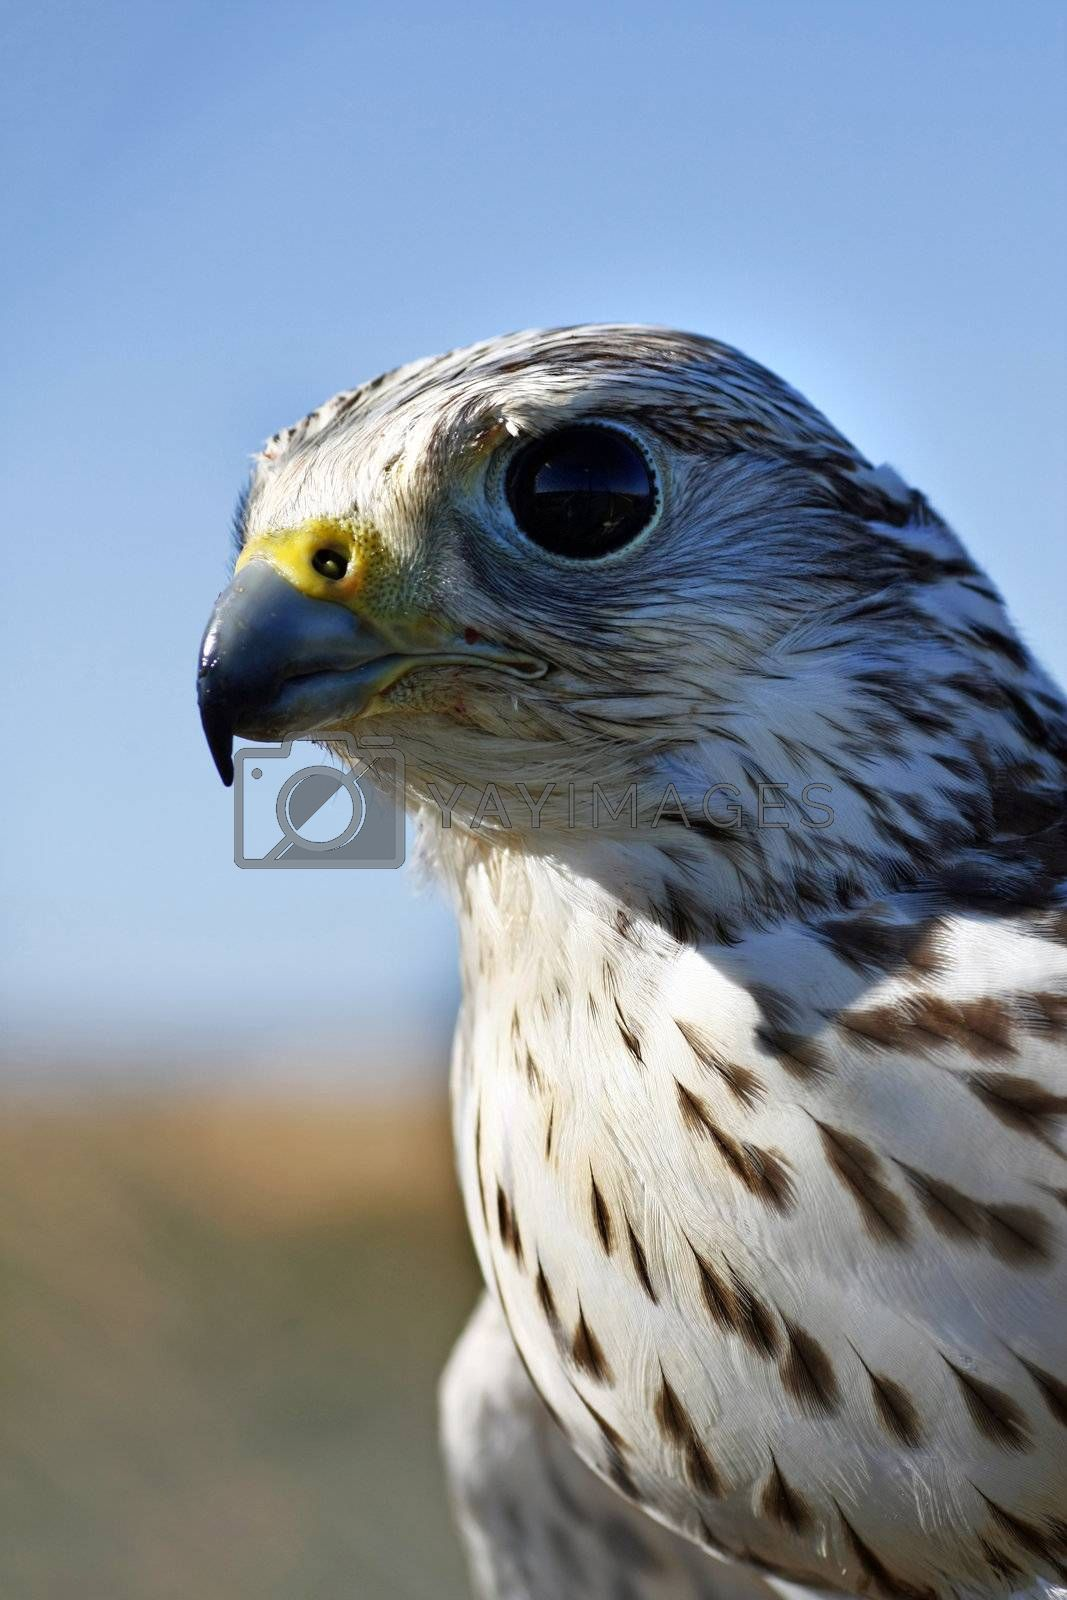 Close up view of a falcon's head.